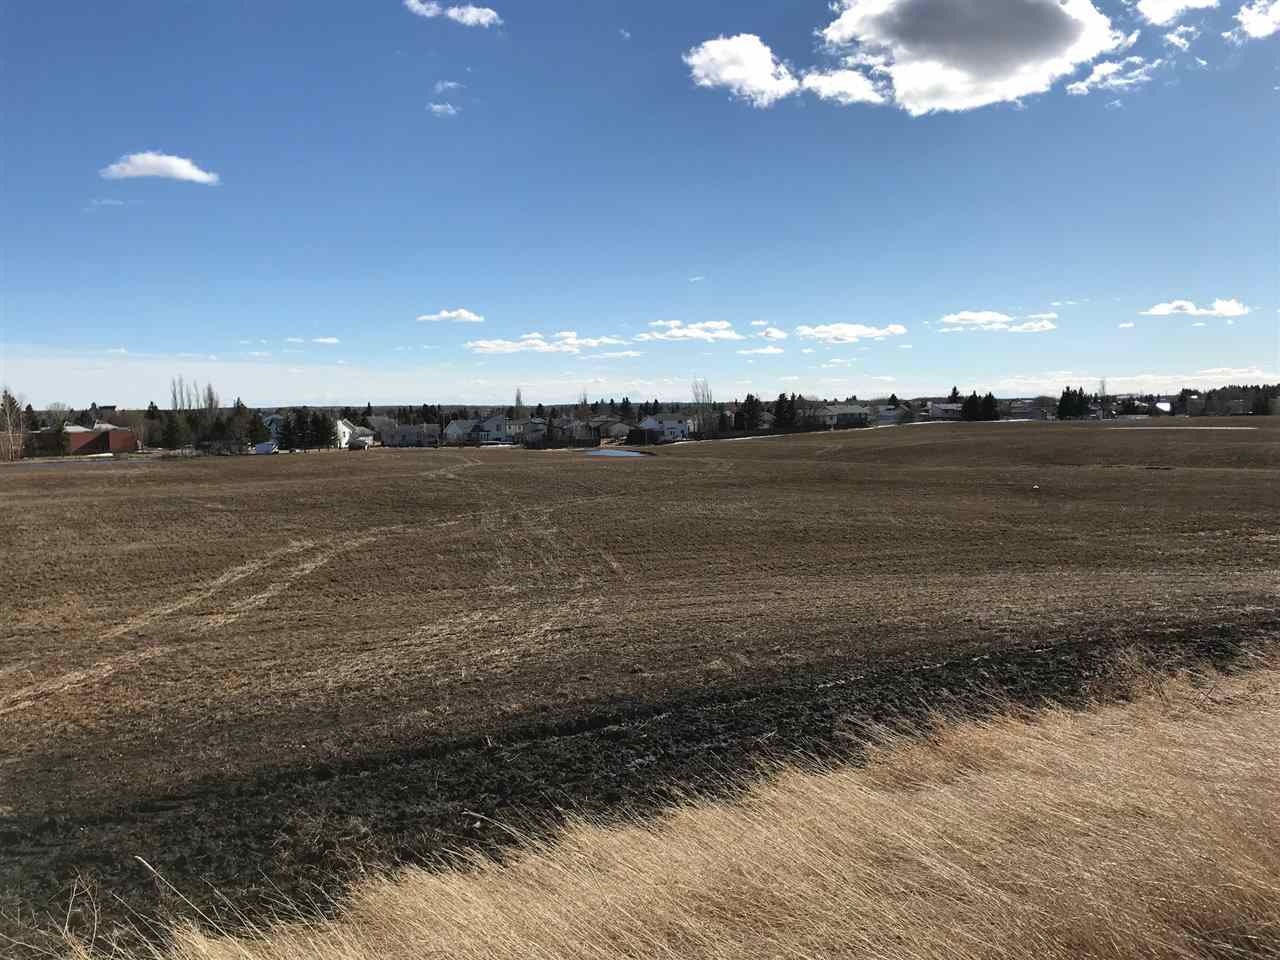 Developers wanted. Excellent opportunity in a town of Barrhead to develop 40 acres of land. 22 Subdivided lots 1 acre and up. Power, gas and water at the property. Sewer needs to be brought from nearby Residential subdivision. Local RCMP, Cal and Ramada. Express interest in new developments, so is the seller to build.